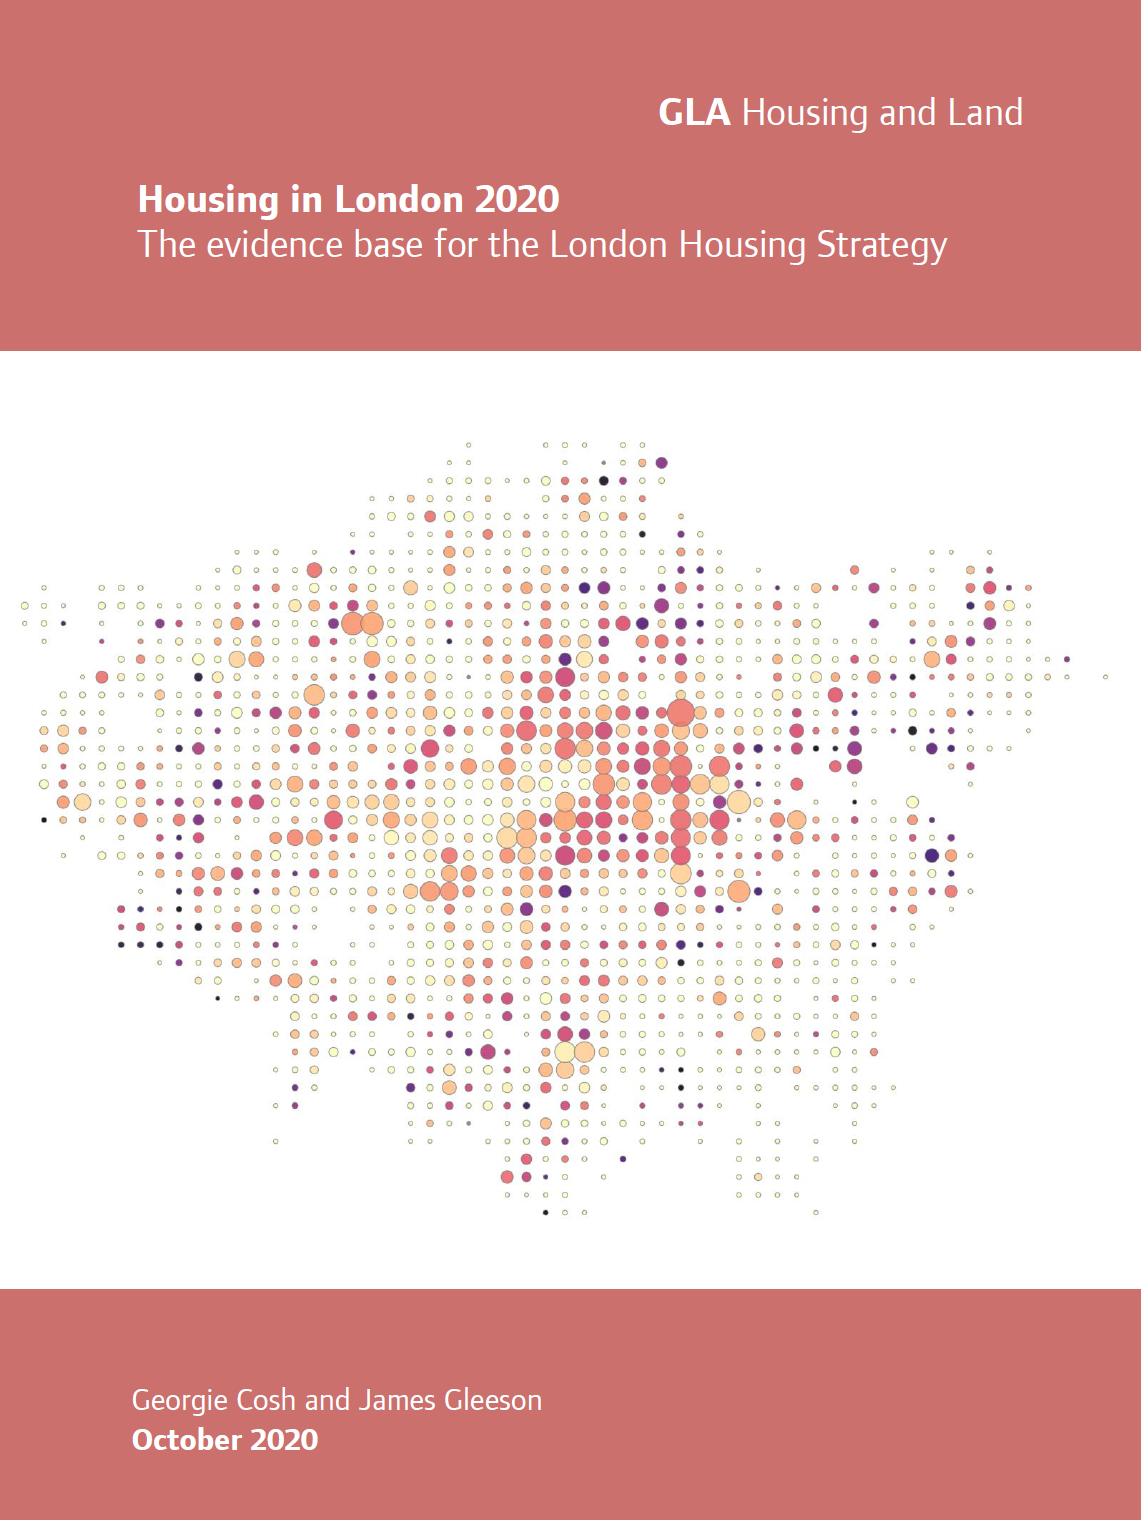 Front cover of the GLA's Housing in London 2020 report